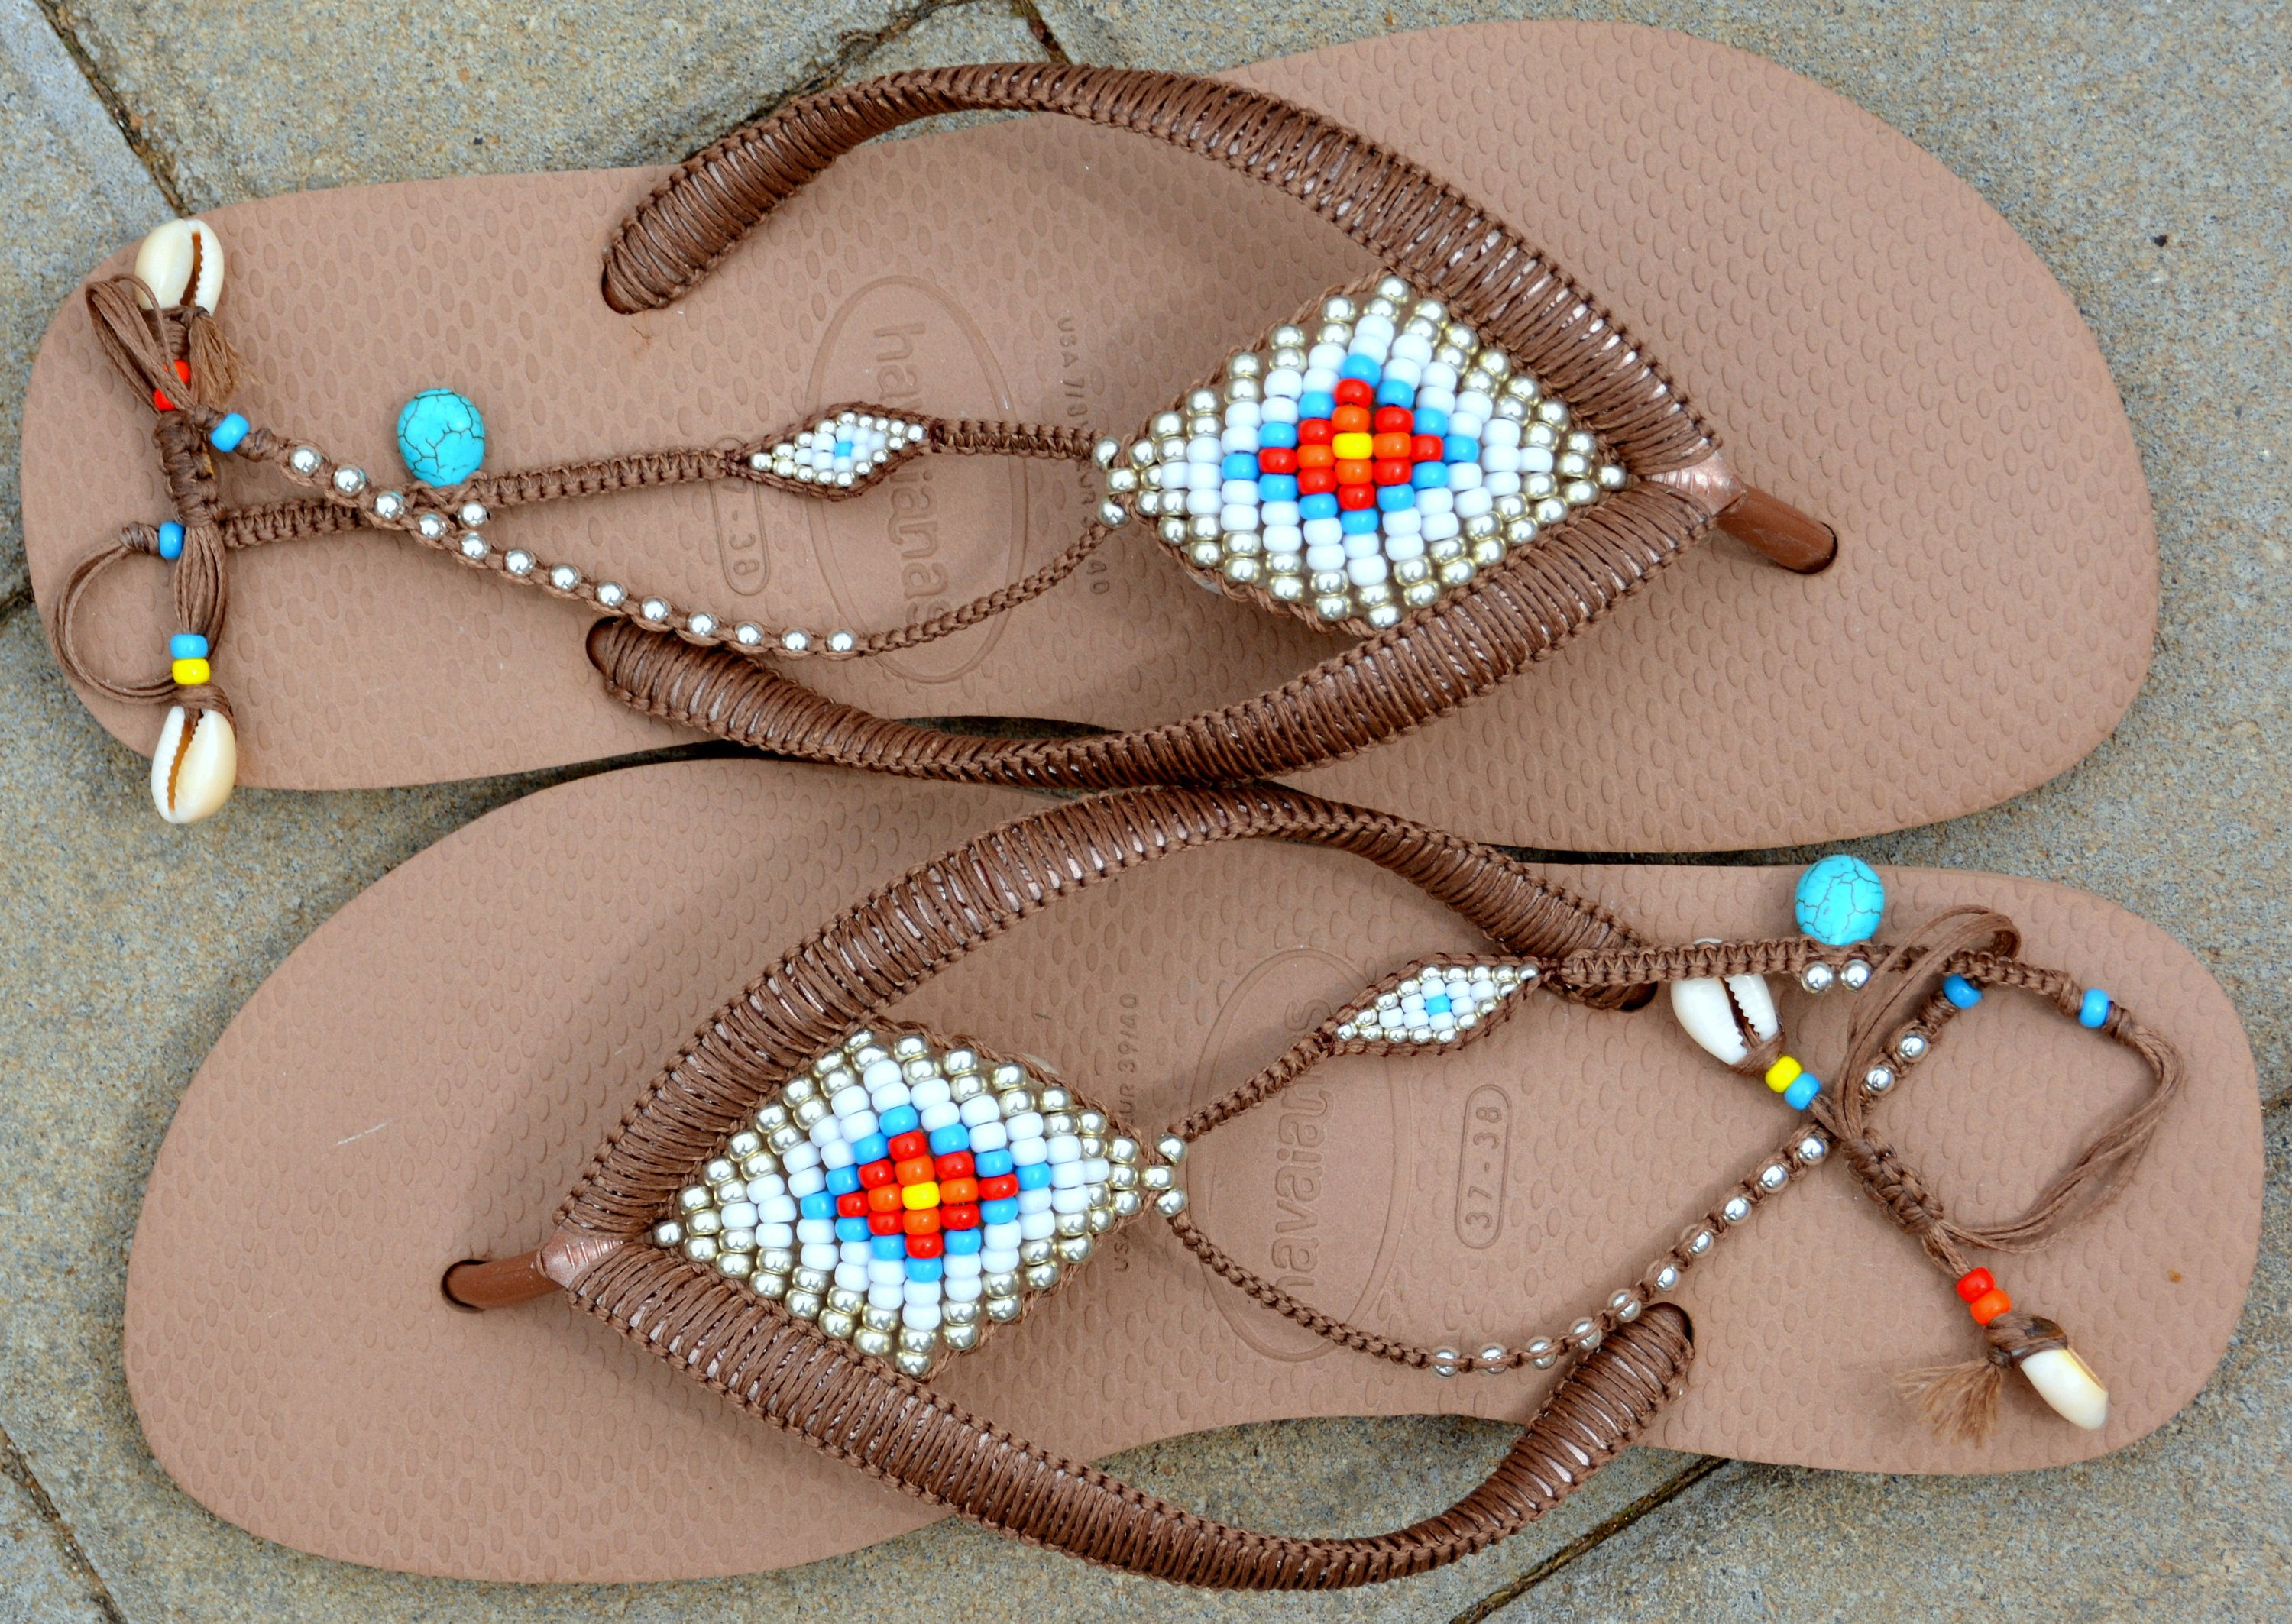 Womens sandals etsy - A Personal Favorite From My Etsy Shop Https Www Etsy Com